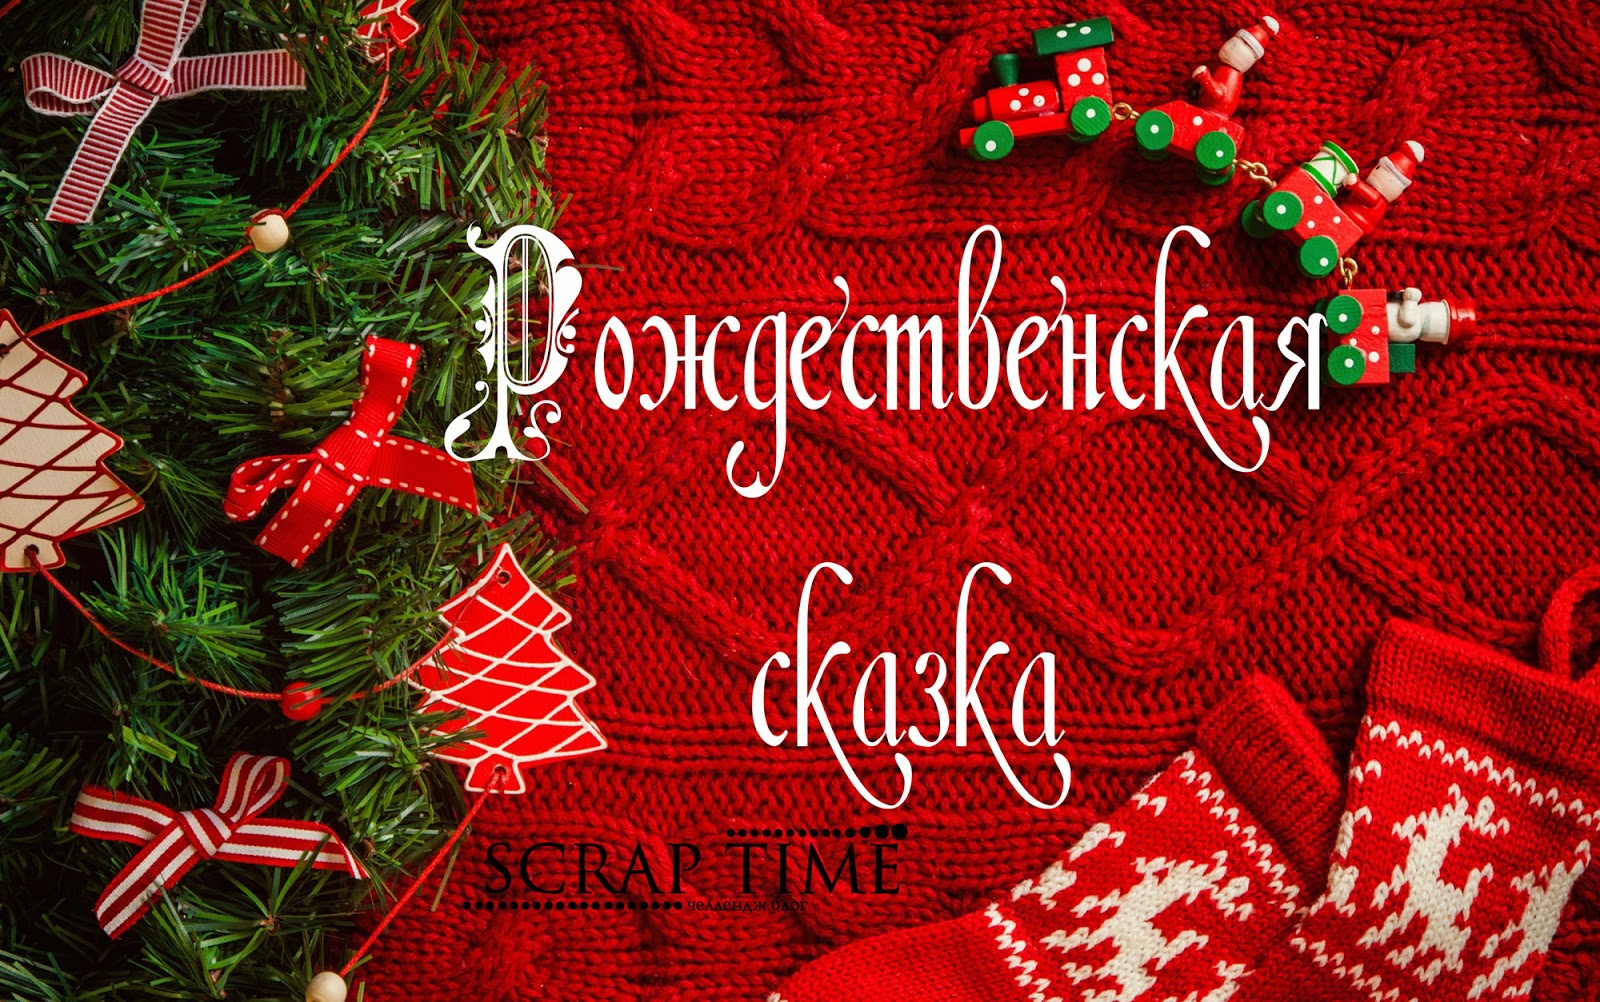 http://4scraptime.blogspot.ru/2014/12/blog-post_30.html